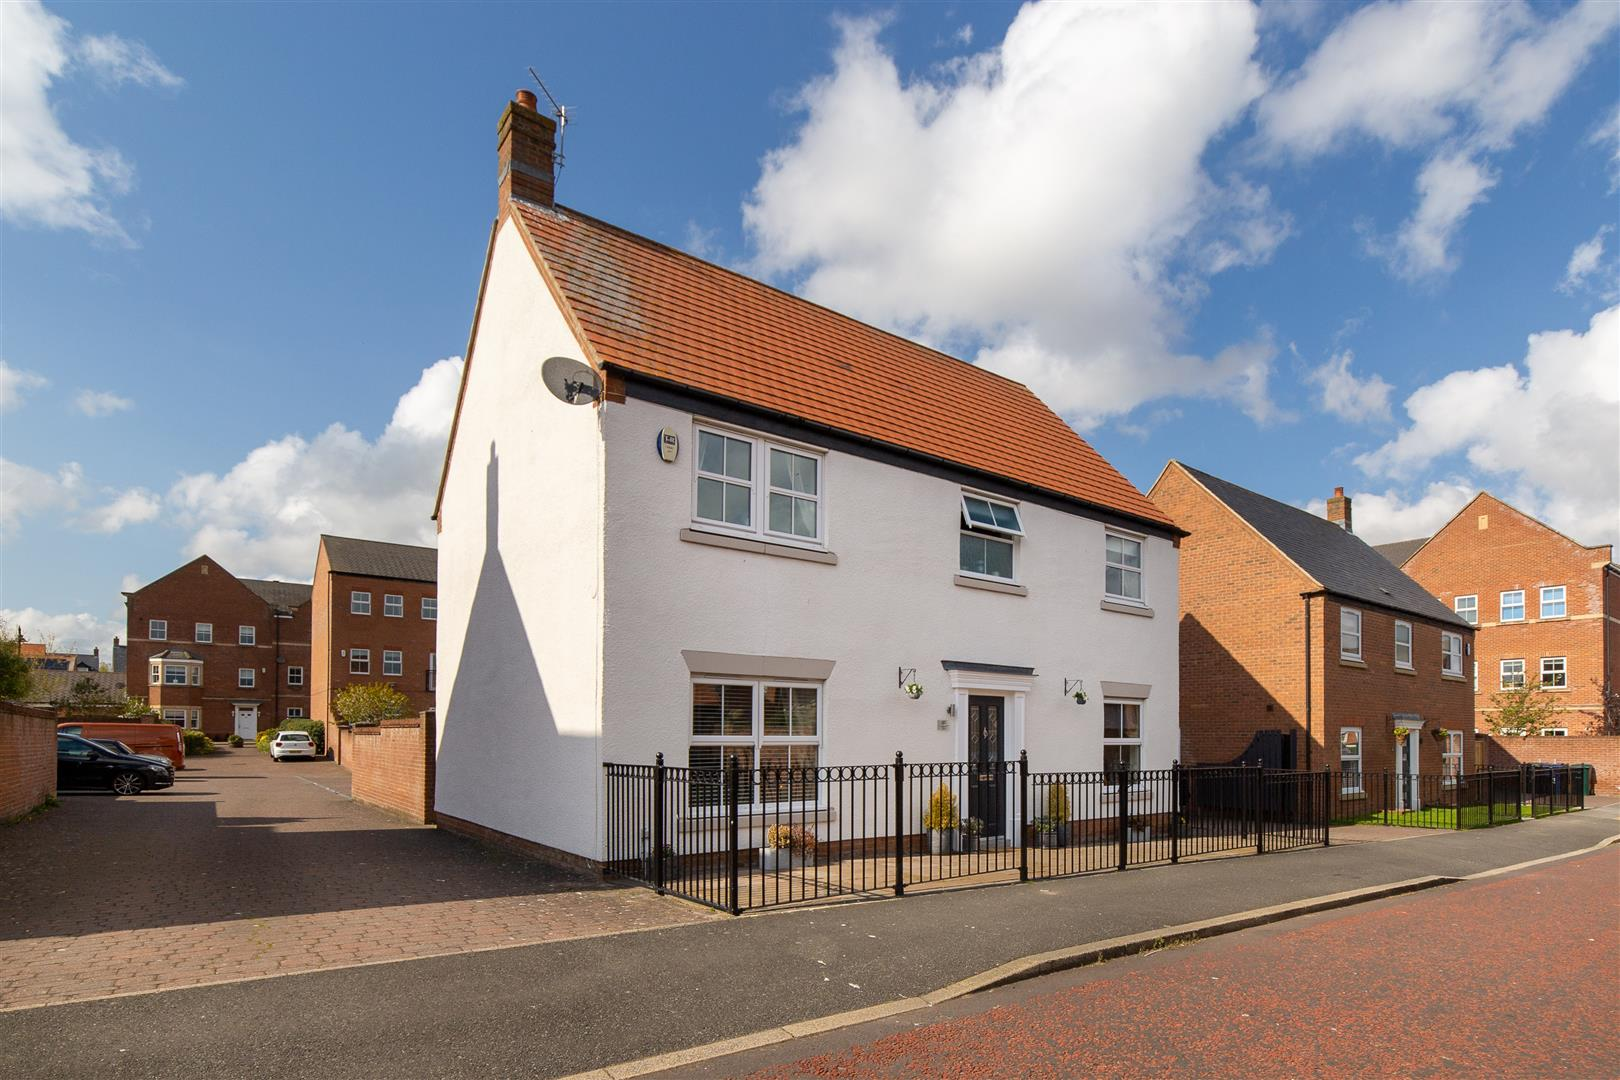 4 bed detached house for sale in Halton Way, Great Park - Property Image 1